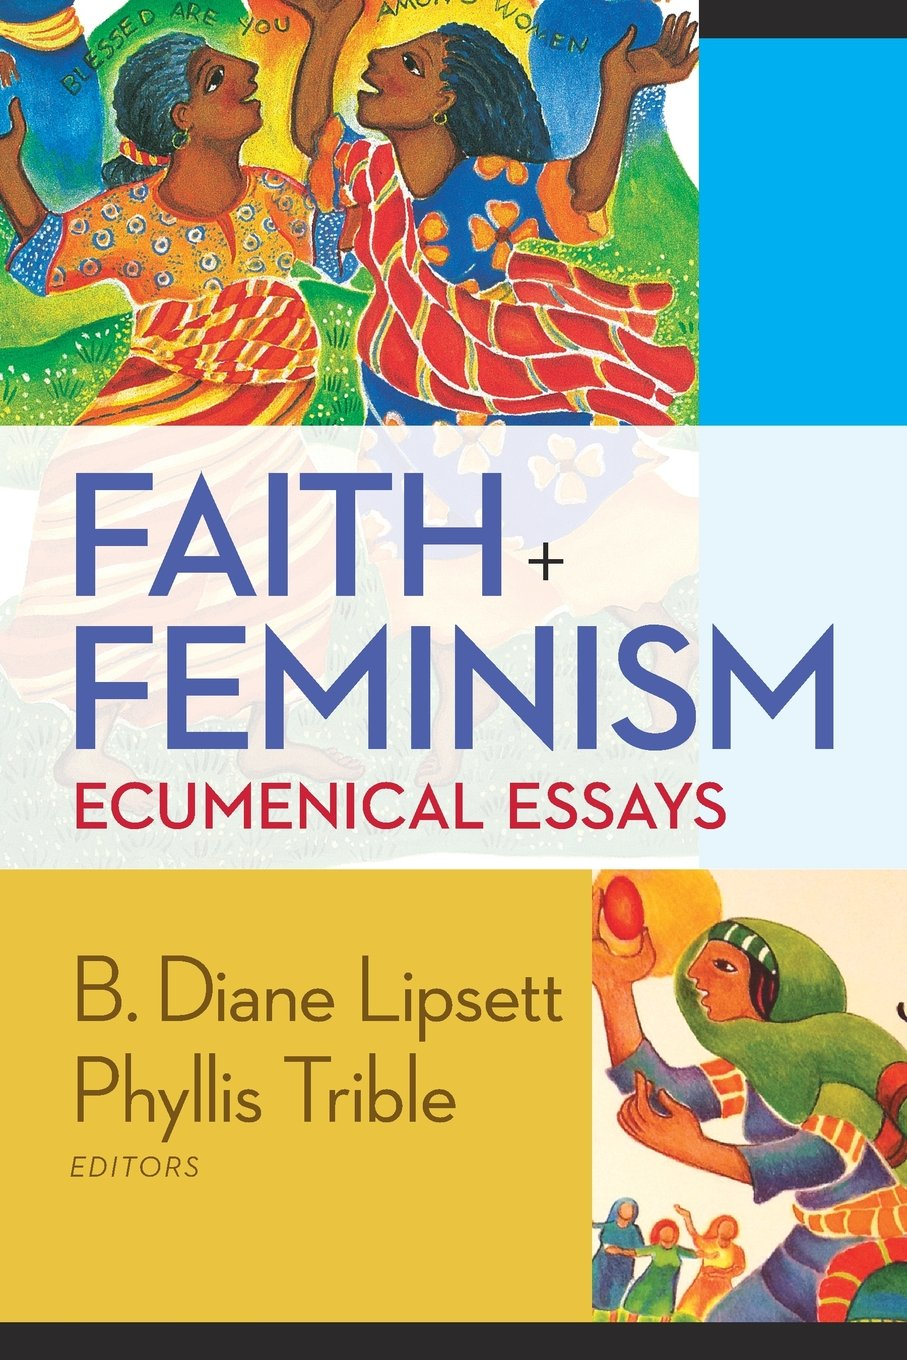 faith and feminism ecumenical essays phyllis trible b diane faith and feminism ecumenical essays phyllis trible b diane lipsett 9780664239695 com books